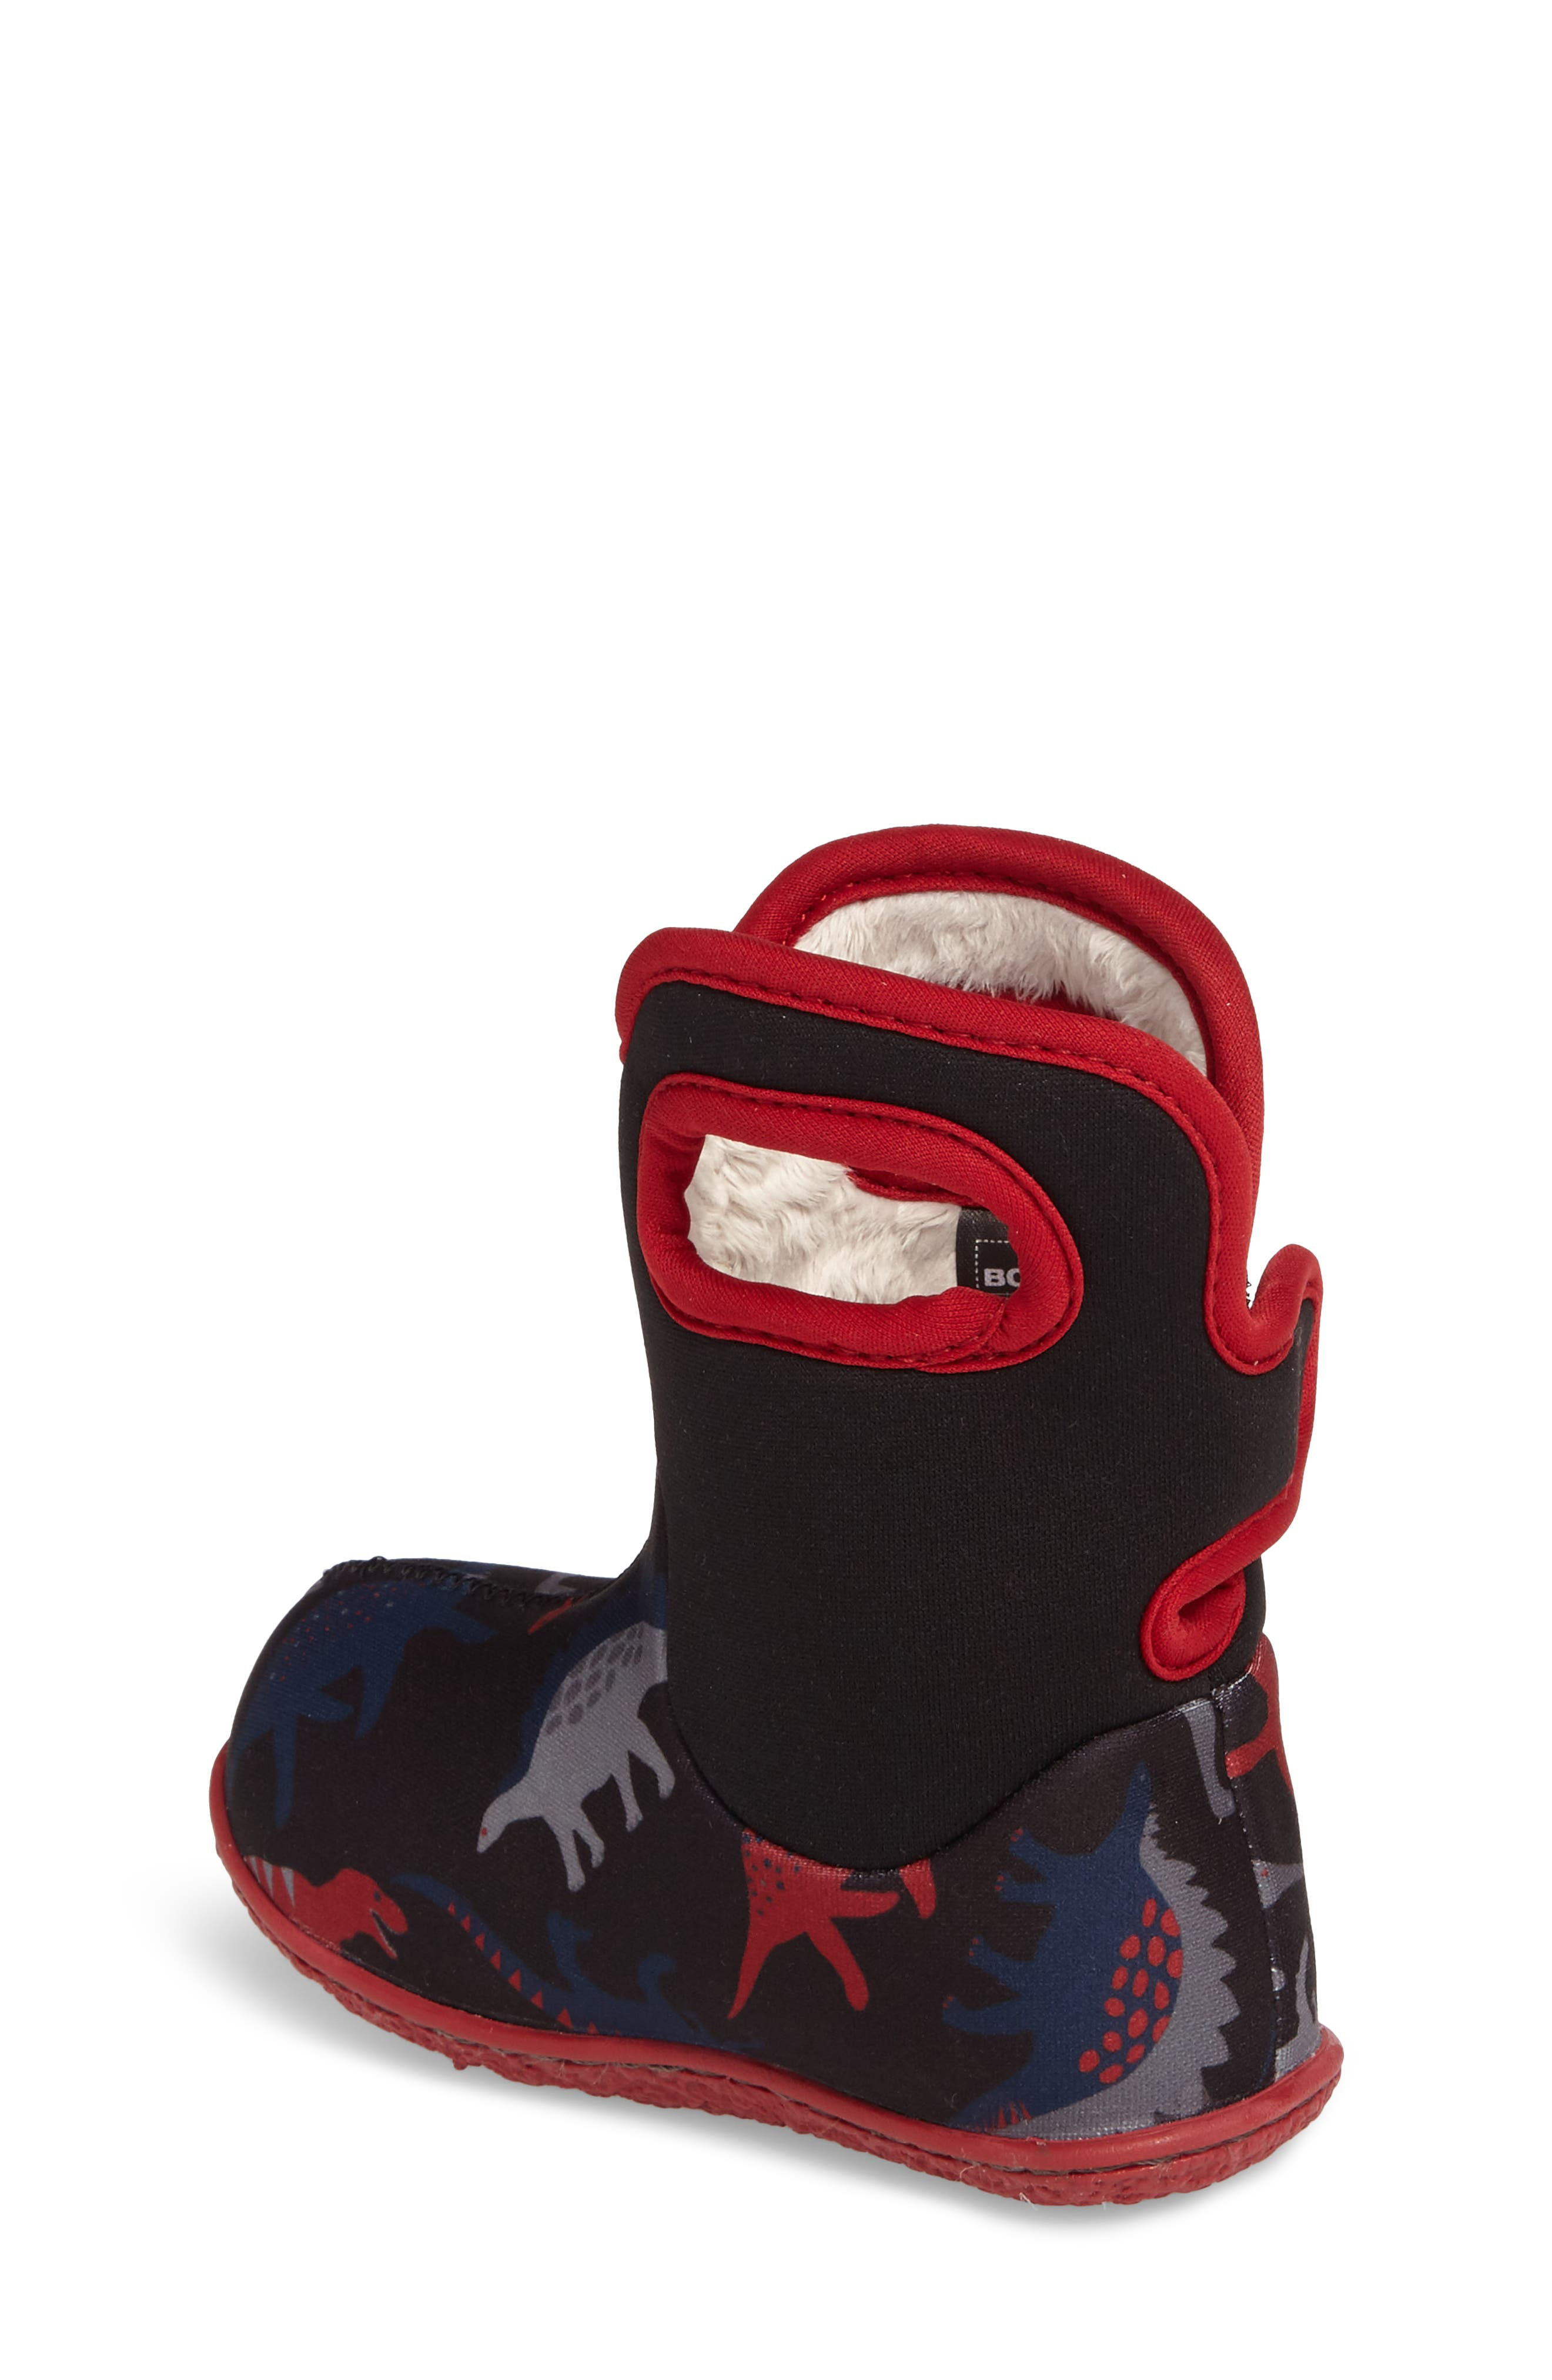 Baby Bog Classic Dino Insulated Waterproof Boot,                             Alternate thumbnail 2, color,                             BLACK/ RED MULTI